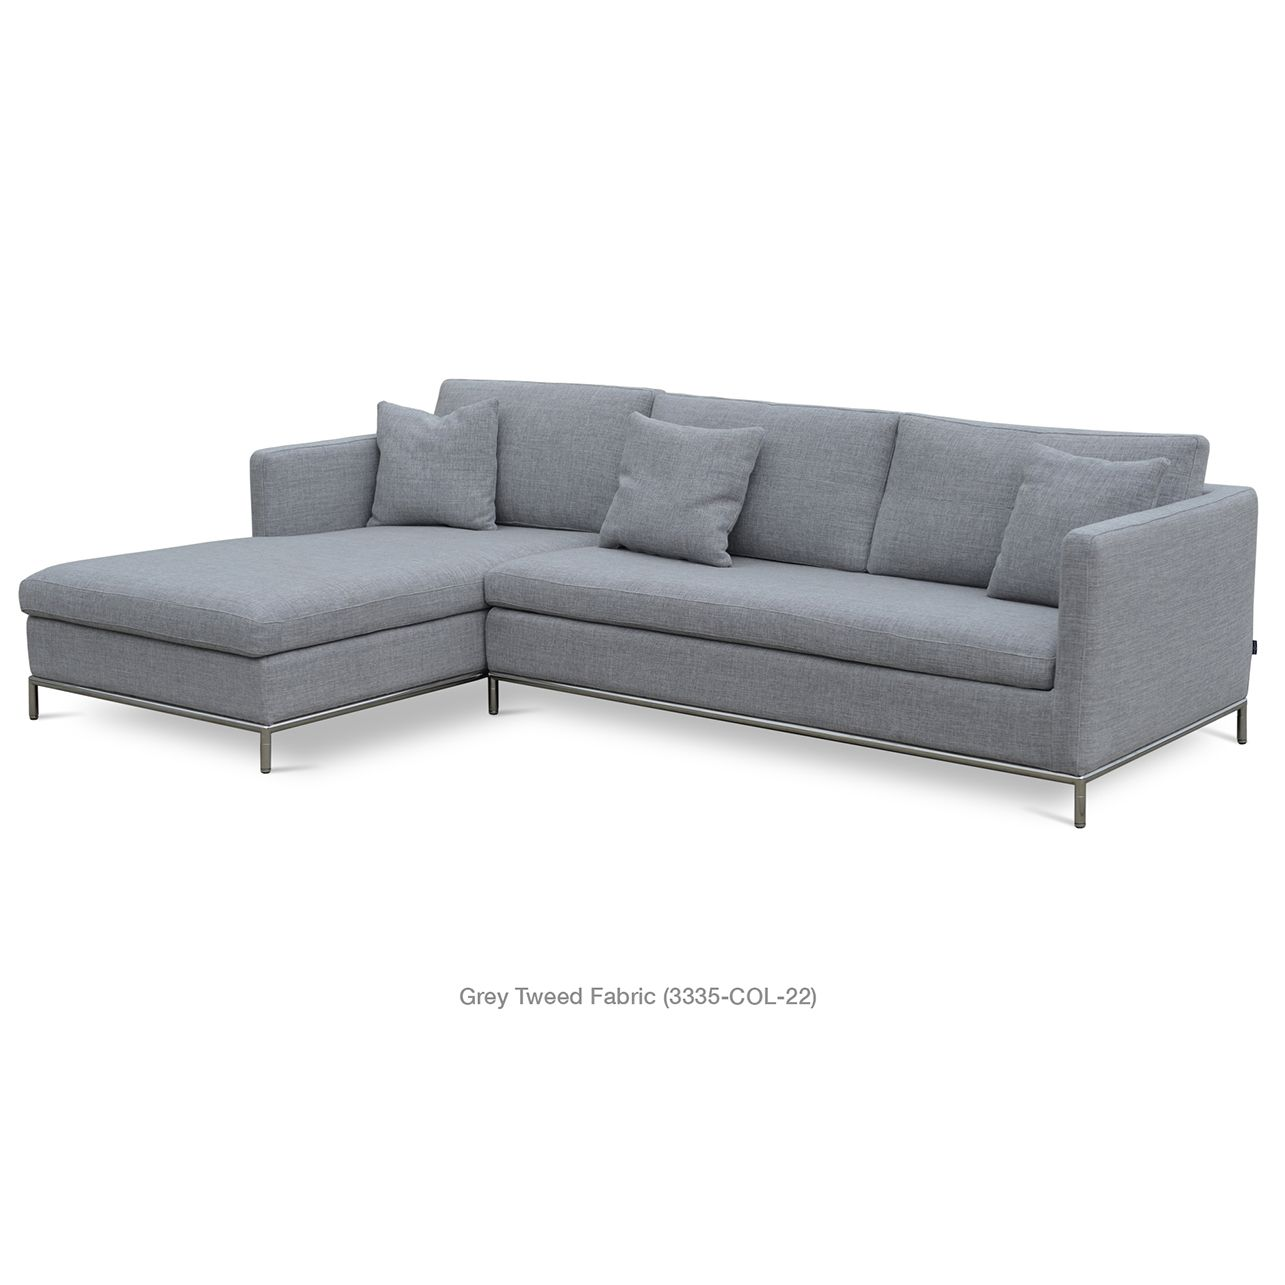 Swell Istanbul Sectional Sofa In Grey Tweed By Sohoconcept Gamerscity Chair Design For Home Gamerscityorg